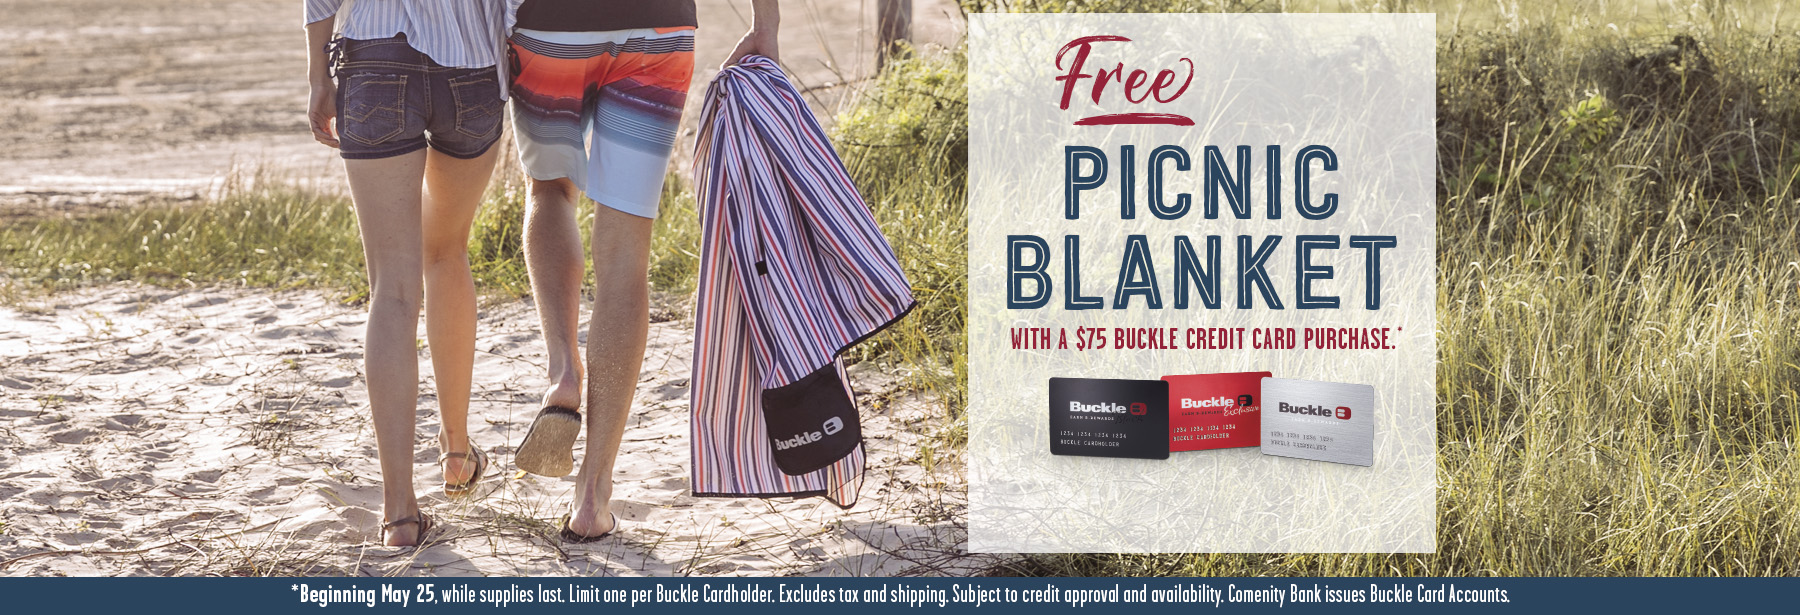 Free Picnic Blanket with a $75 Buckle Credit Card Purchase.